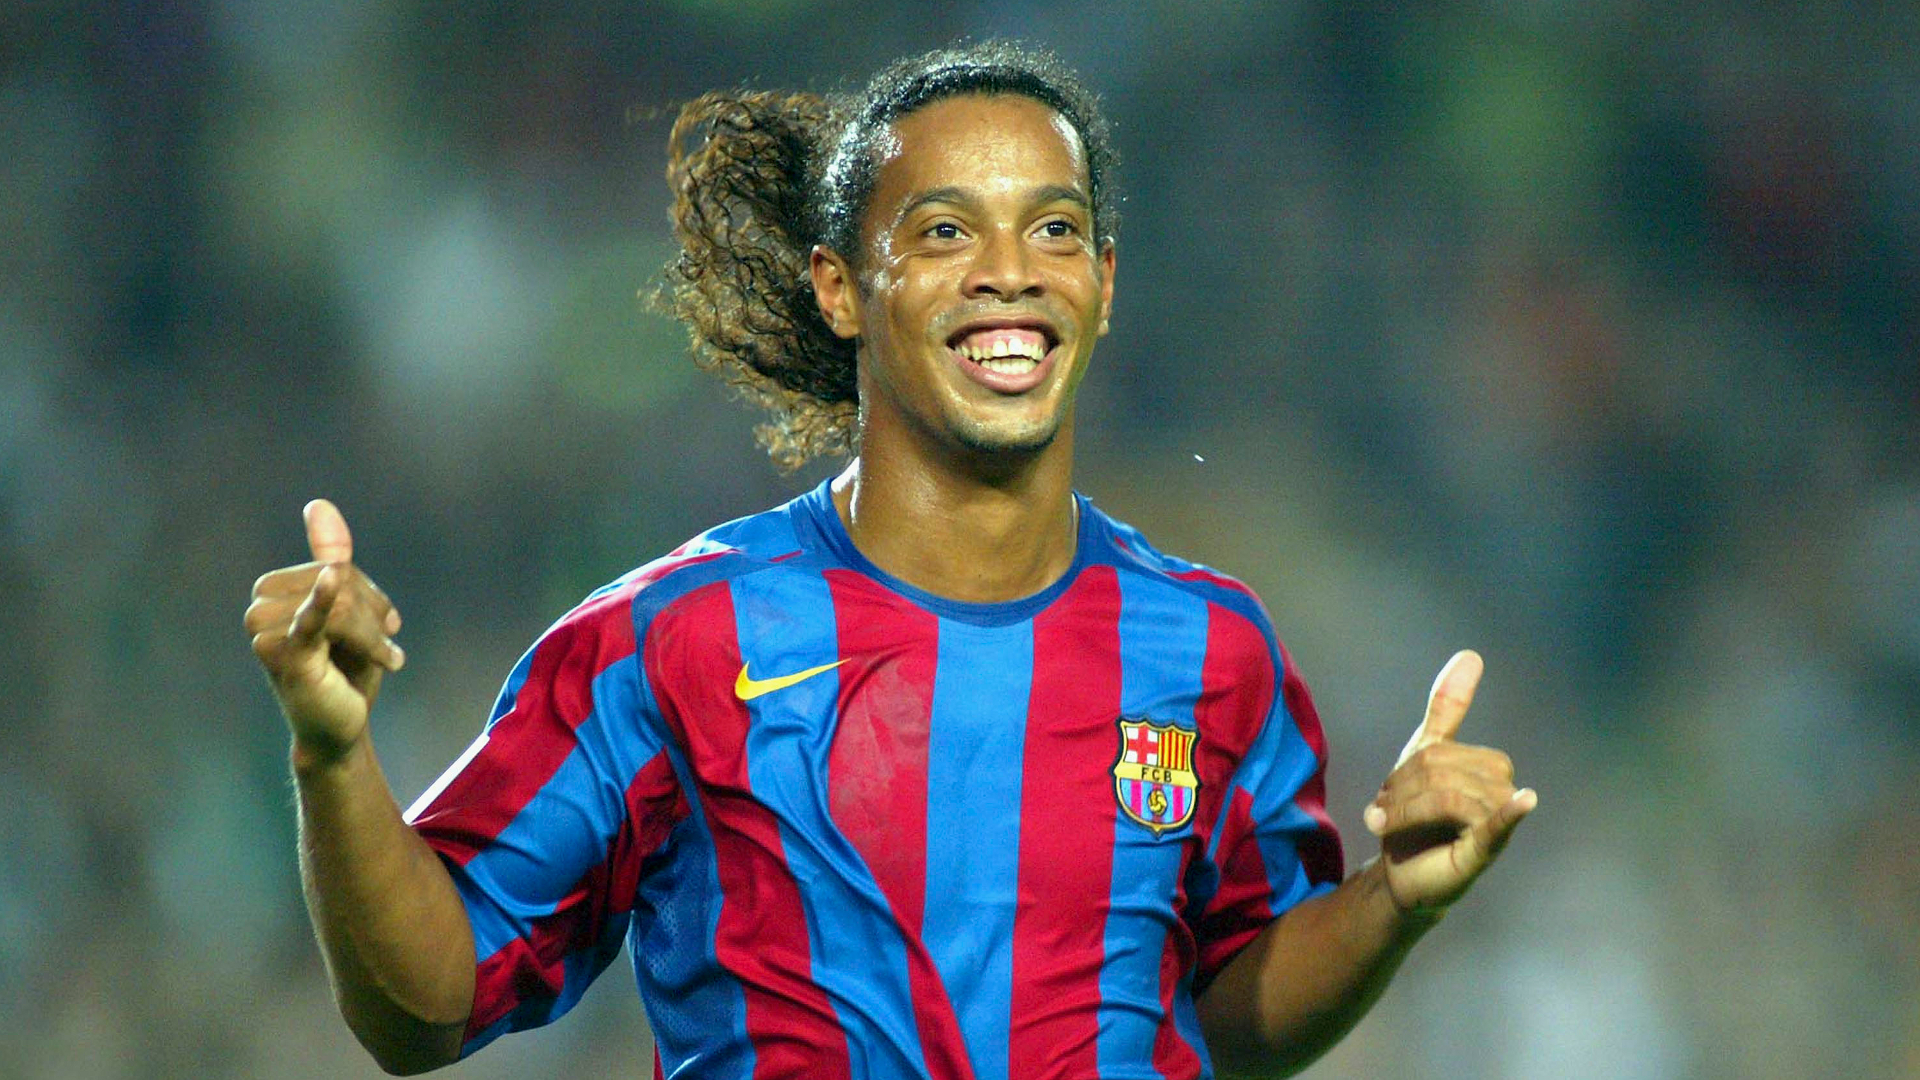 'We offered a load of money' - Ex-Man Utd chief Kenyon on attempts to sign Ronaldinho